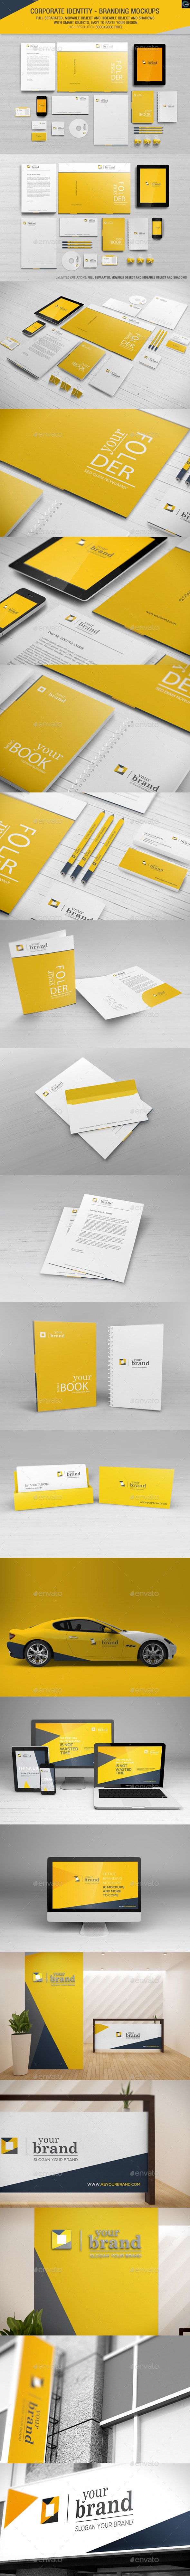 Corporate Identity - Branding Mockups - Stationery Print